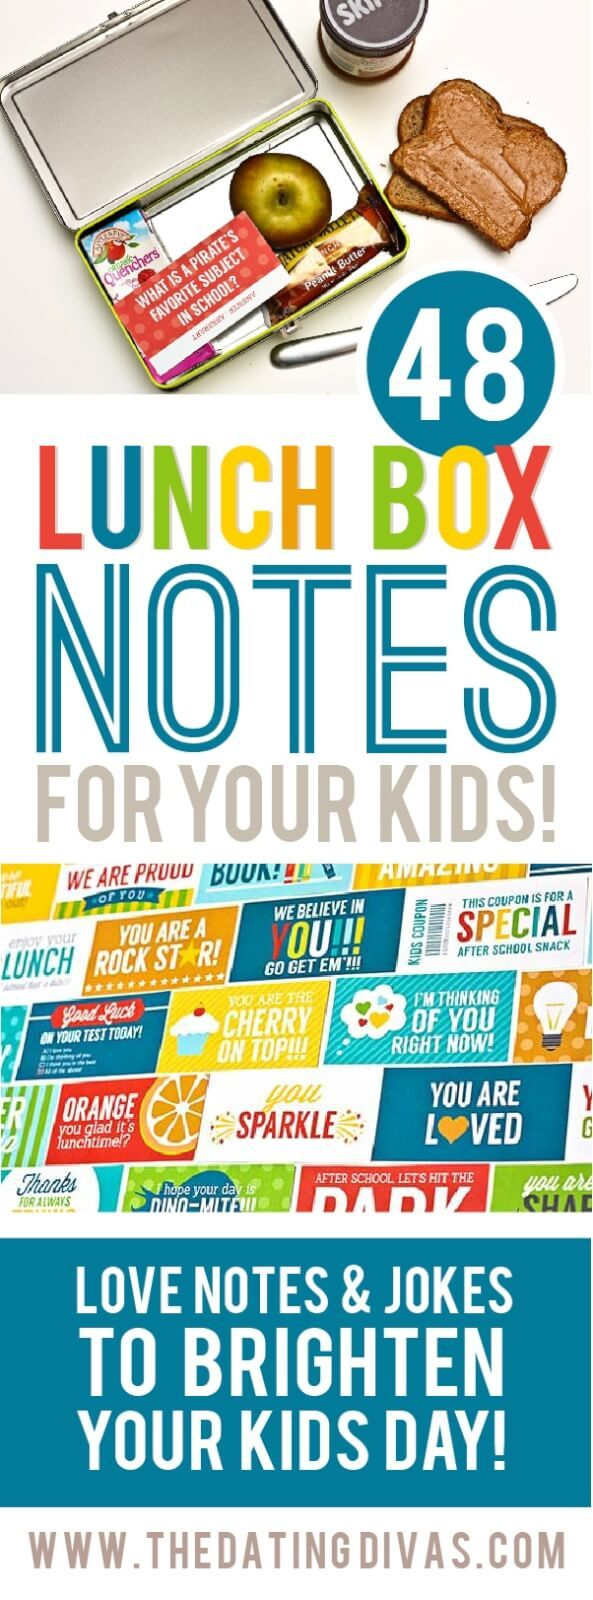 110+ Free Printable Lunch Box Notes To Share The Love images